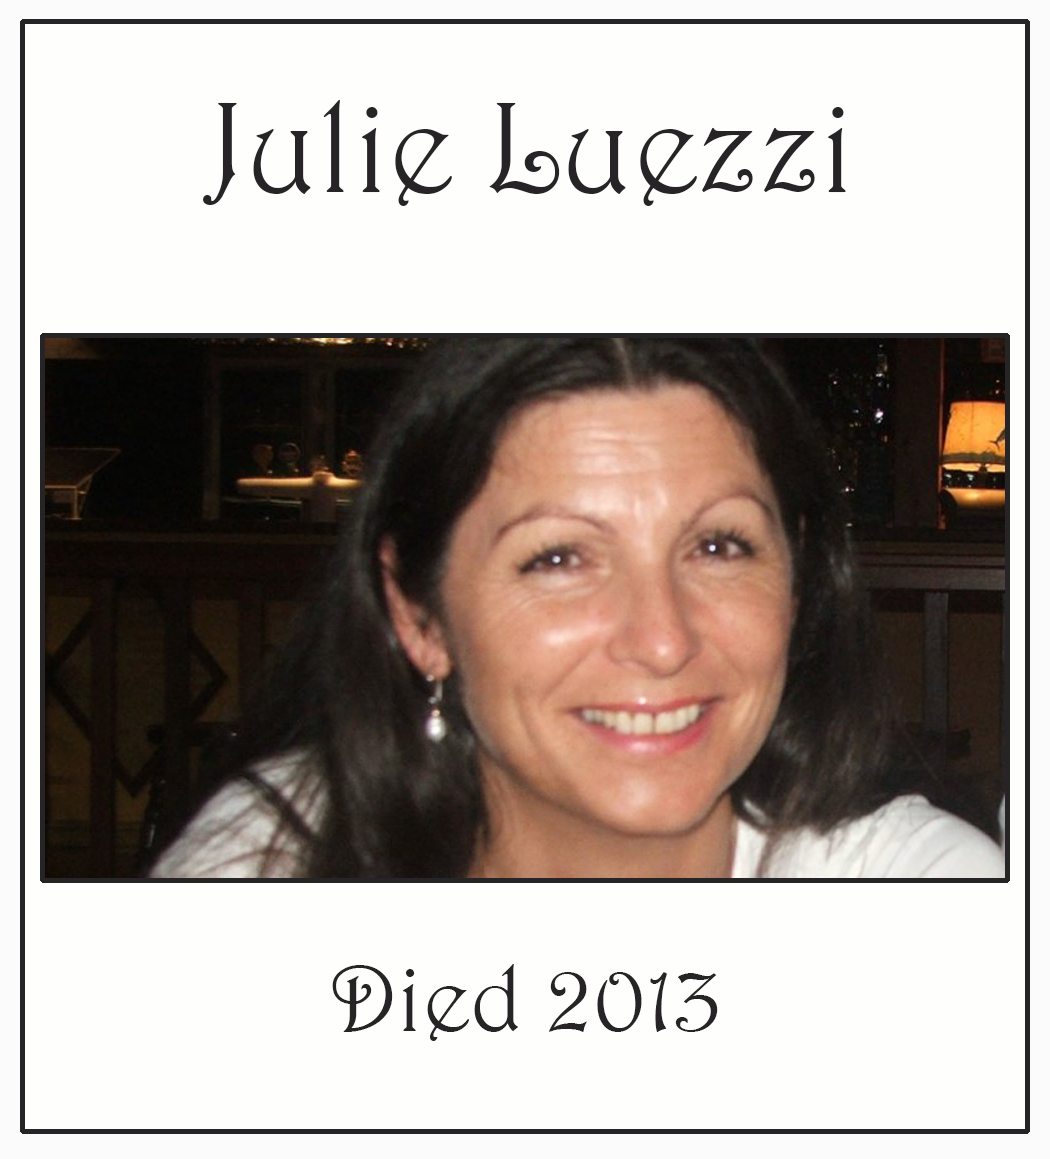 Julie Luezzi FINAL for 2019 MEMORIAL background.jpg